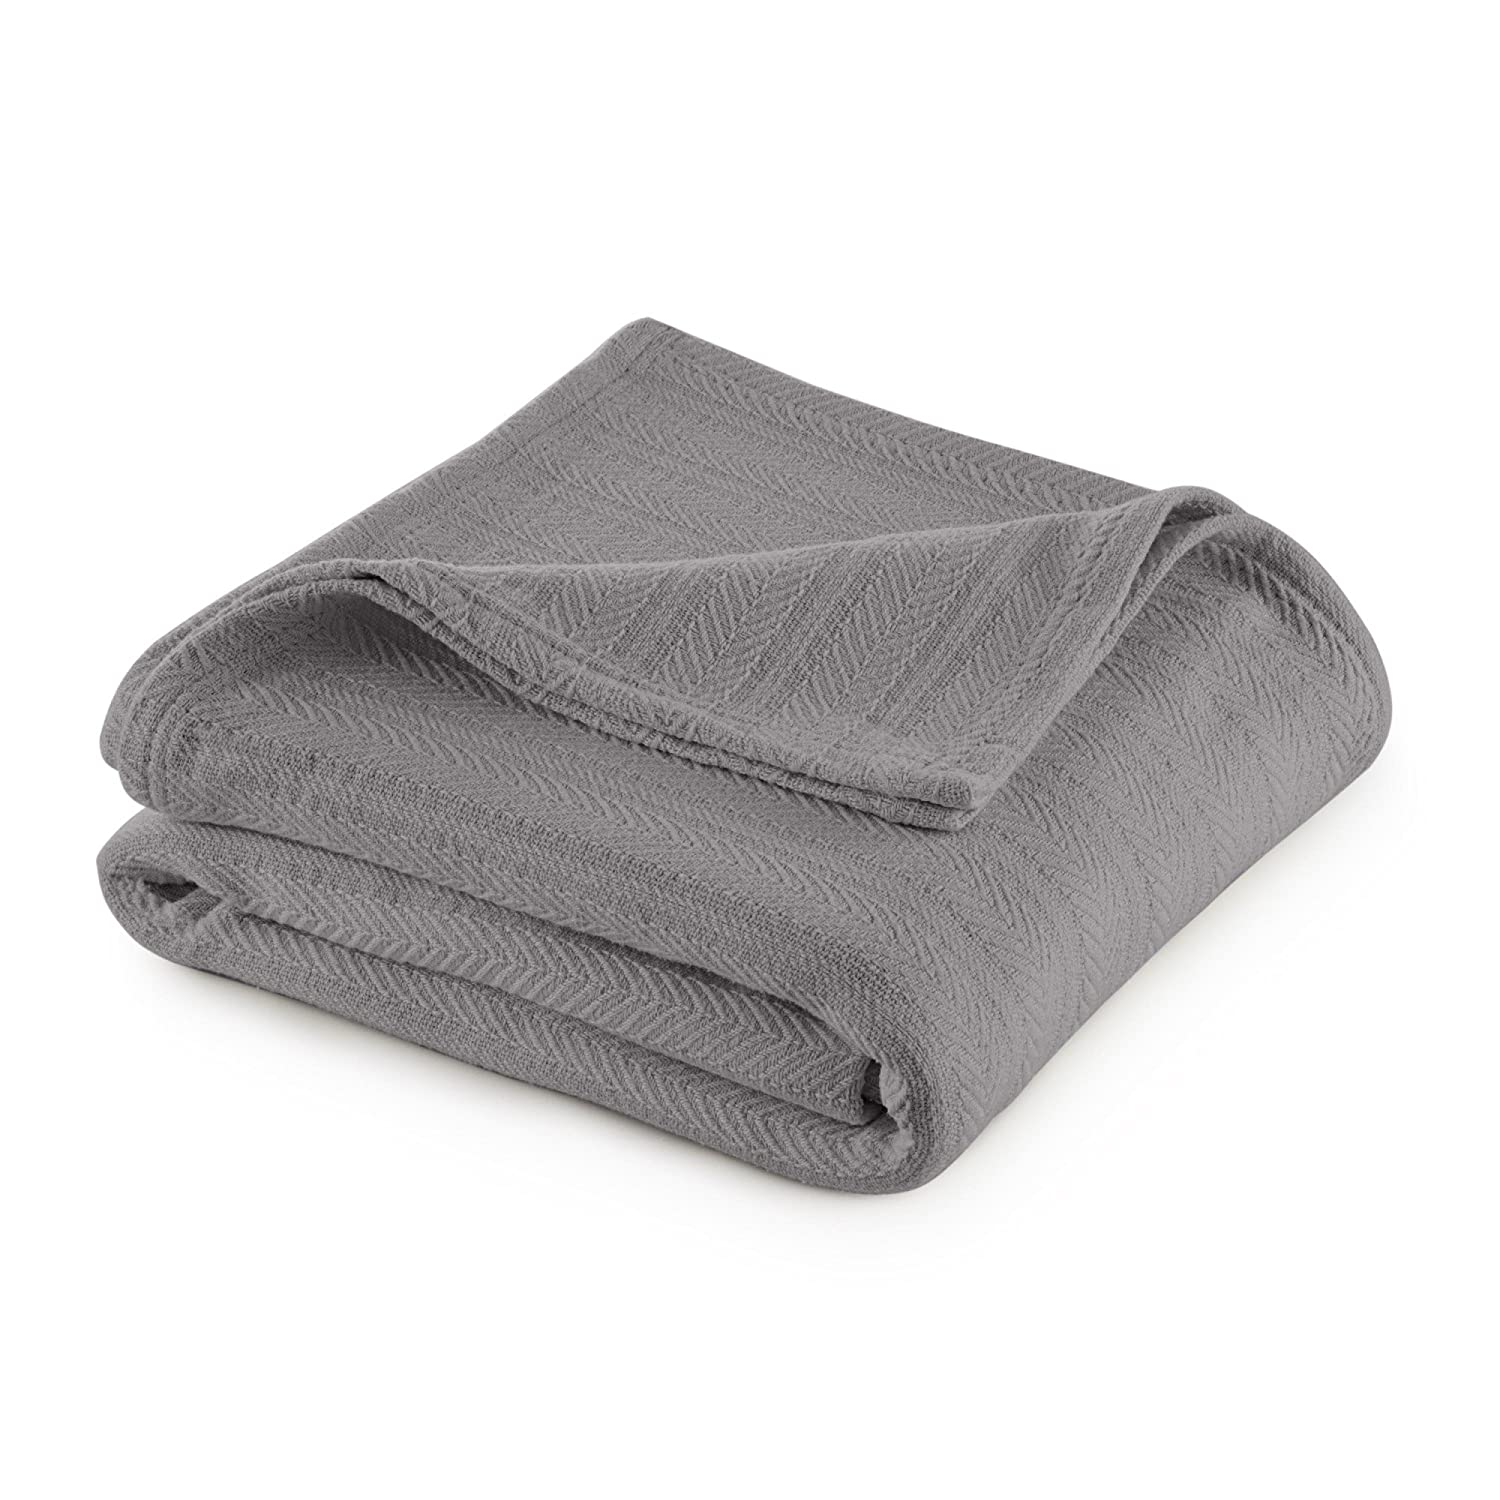 Vellux Cotton Woven Blanket King Gray WestPoint Home